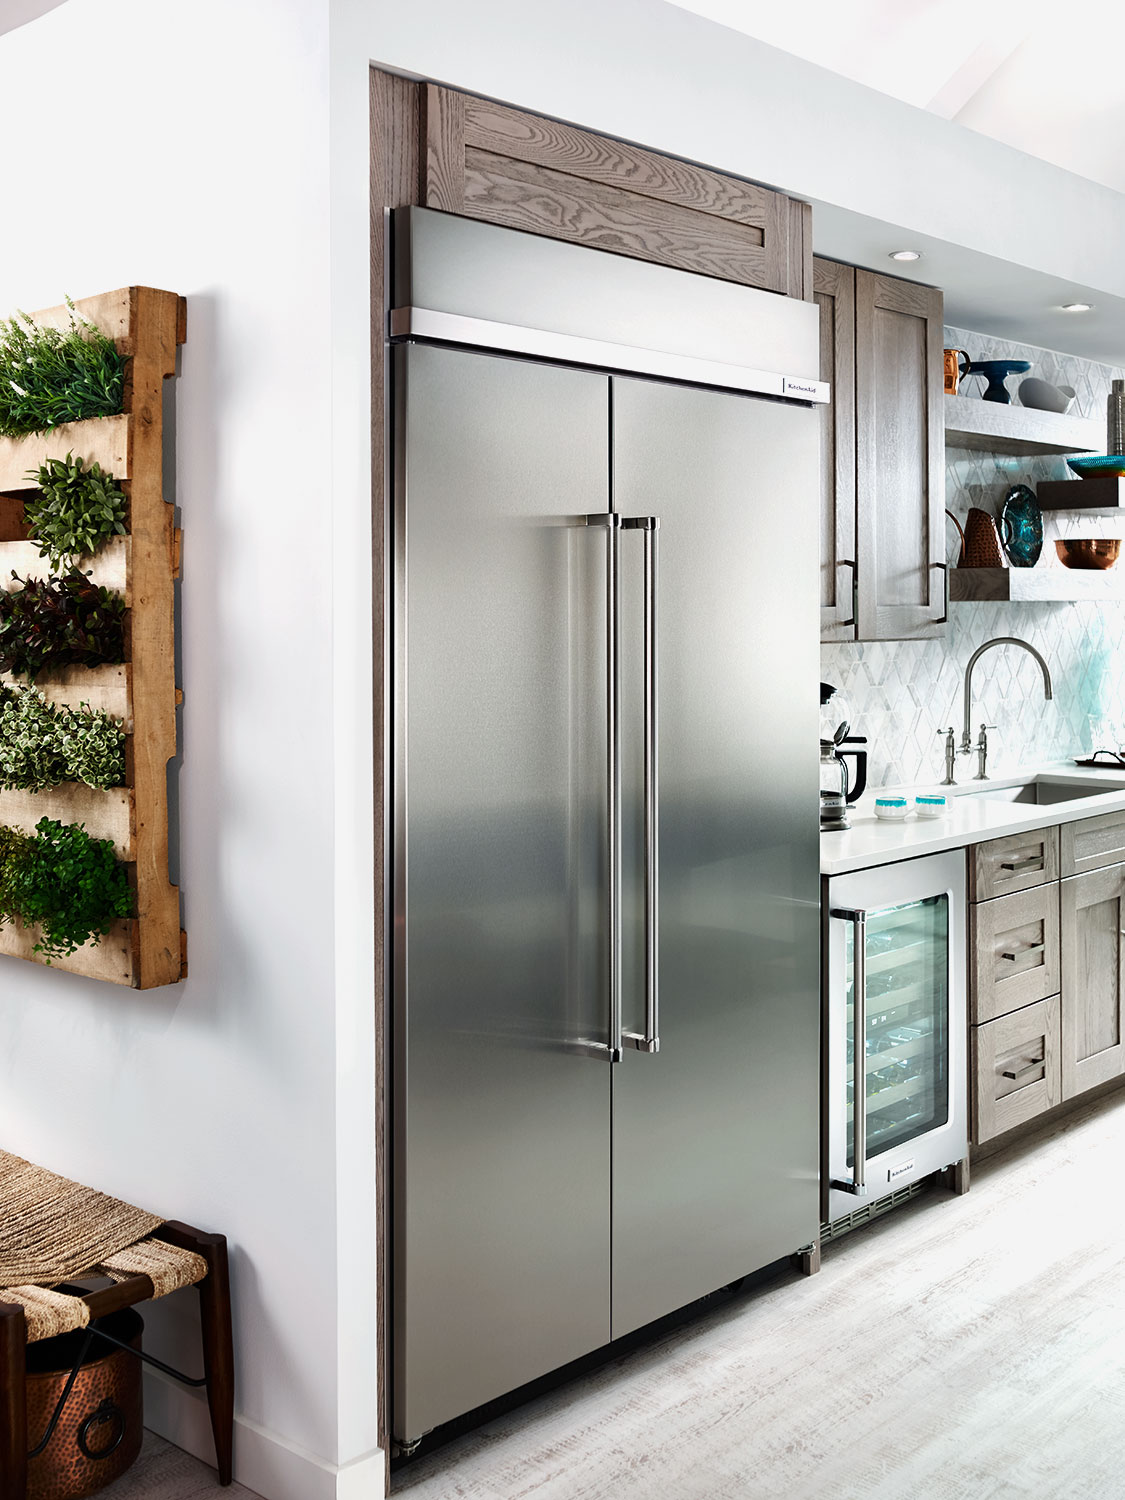 Kitchenaid Stainless Steel Side By Side Refrigerator 30 0